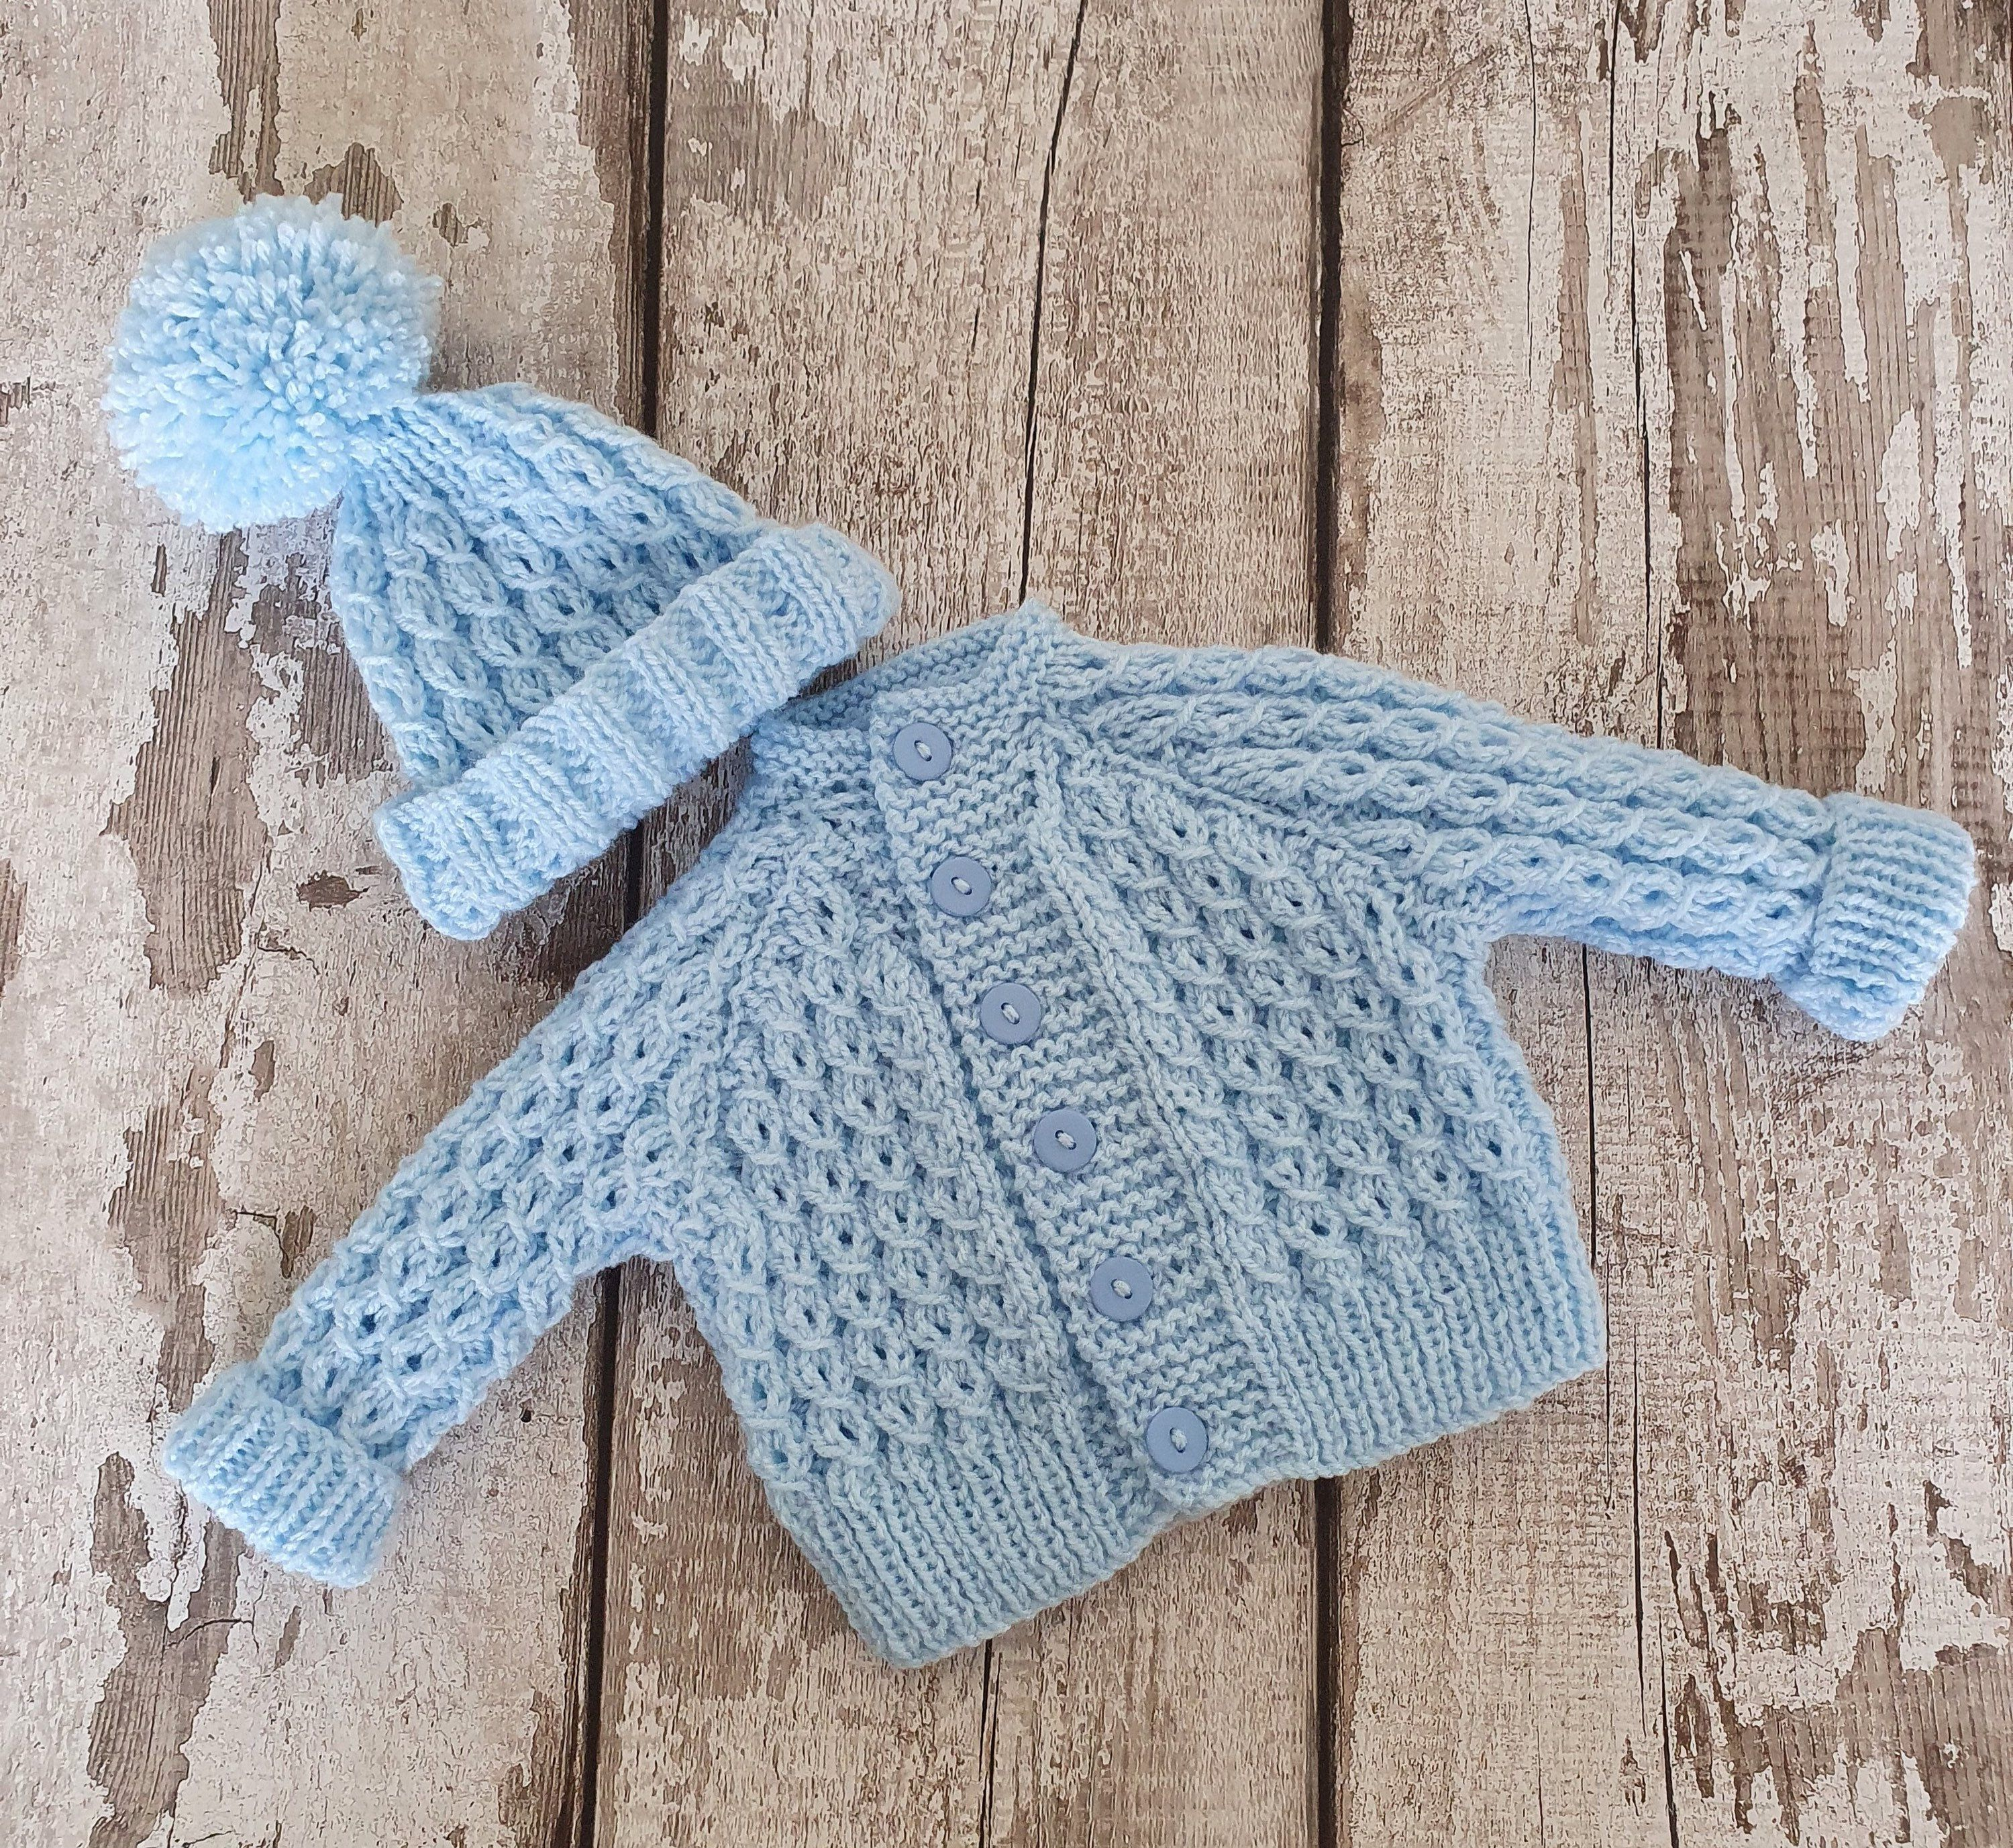 Details about  /Baby Boys Blue Sweater